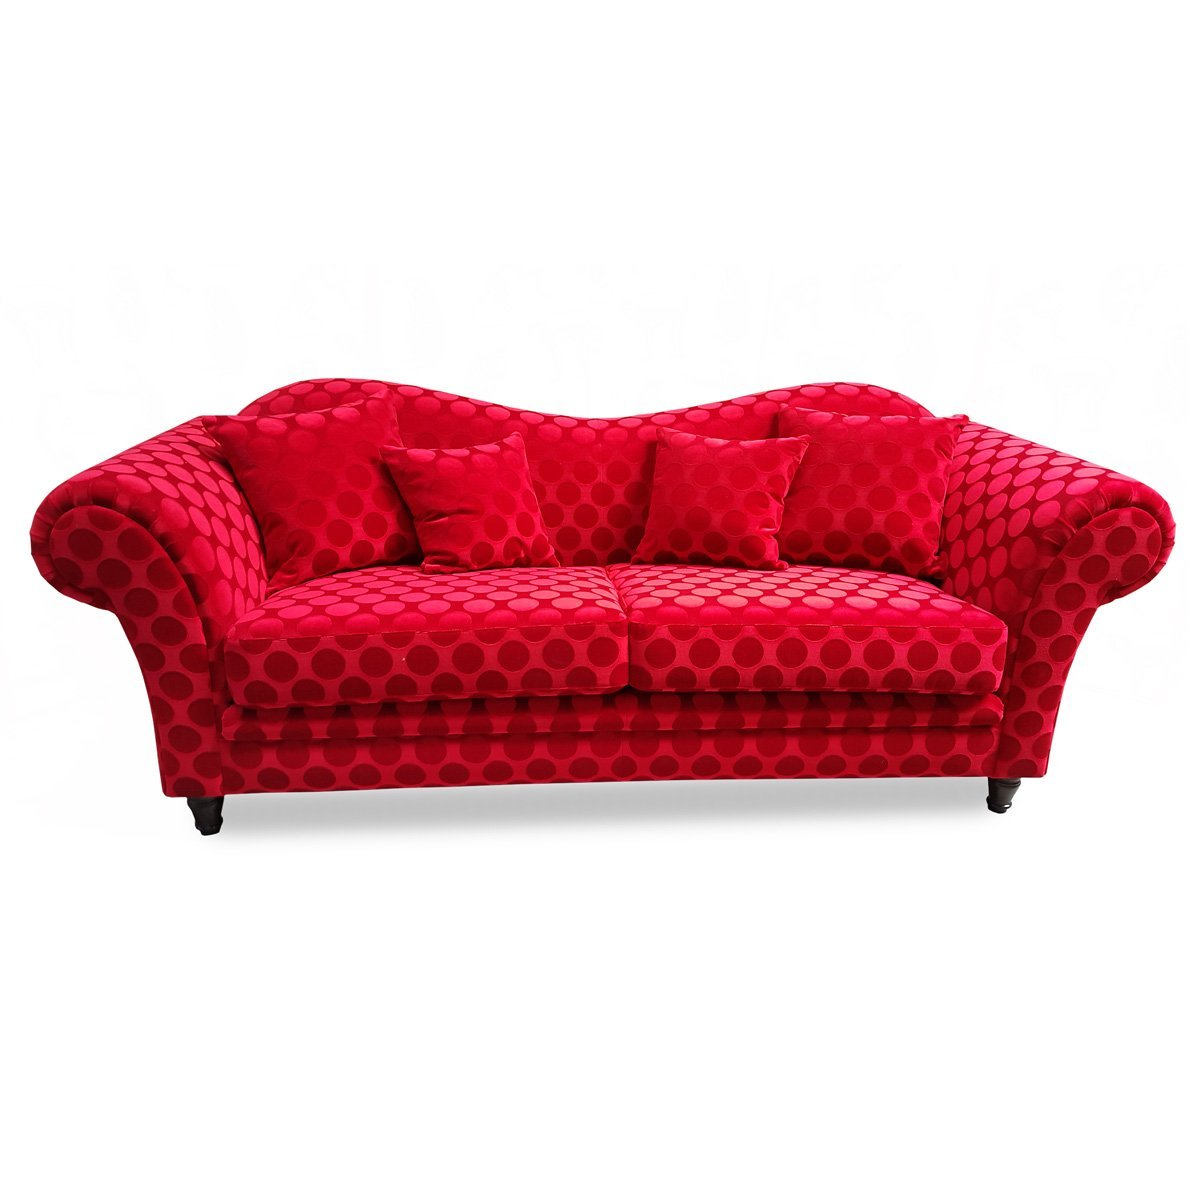 Canap convertible rouge design meubles et atmosph re - Canape convertible rouge ...